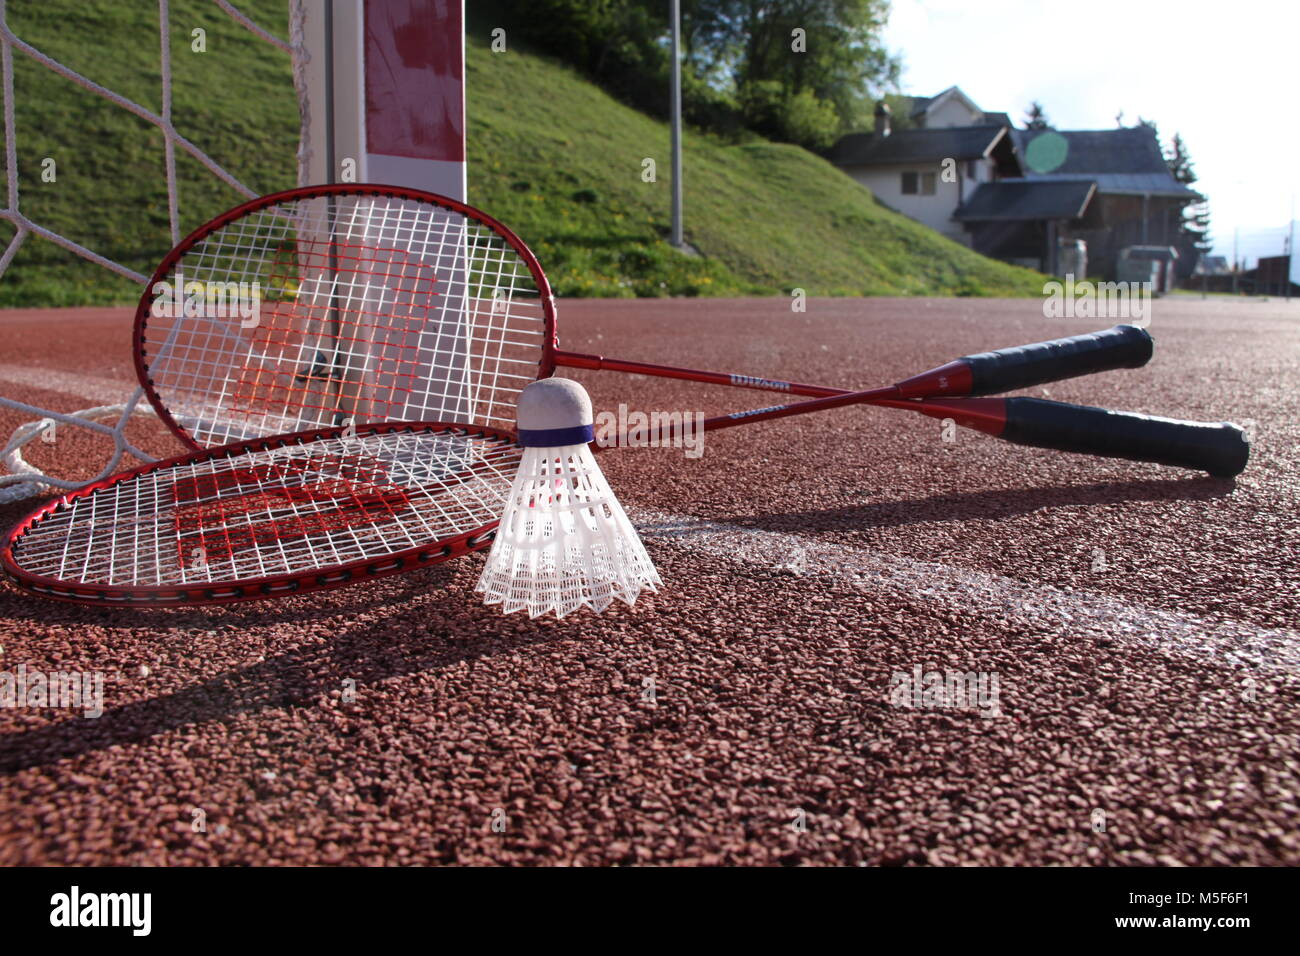 Badmintonset on court - Stock Image